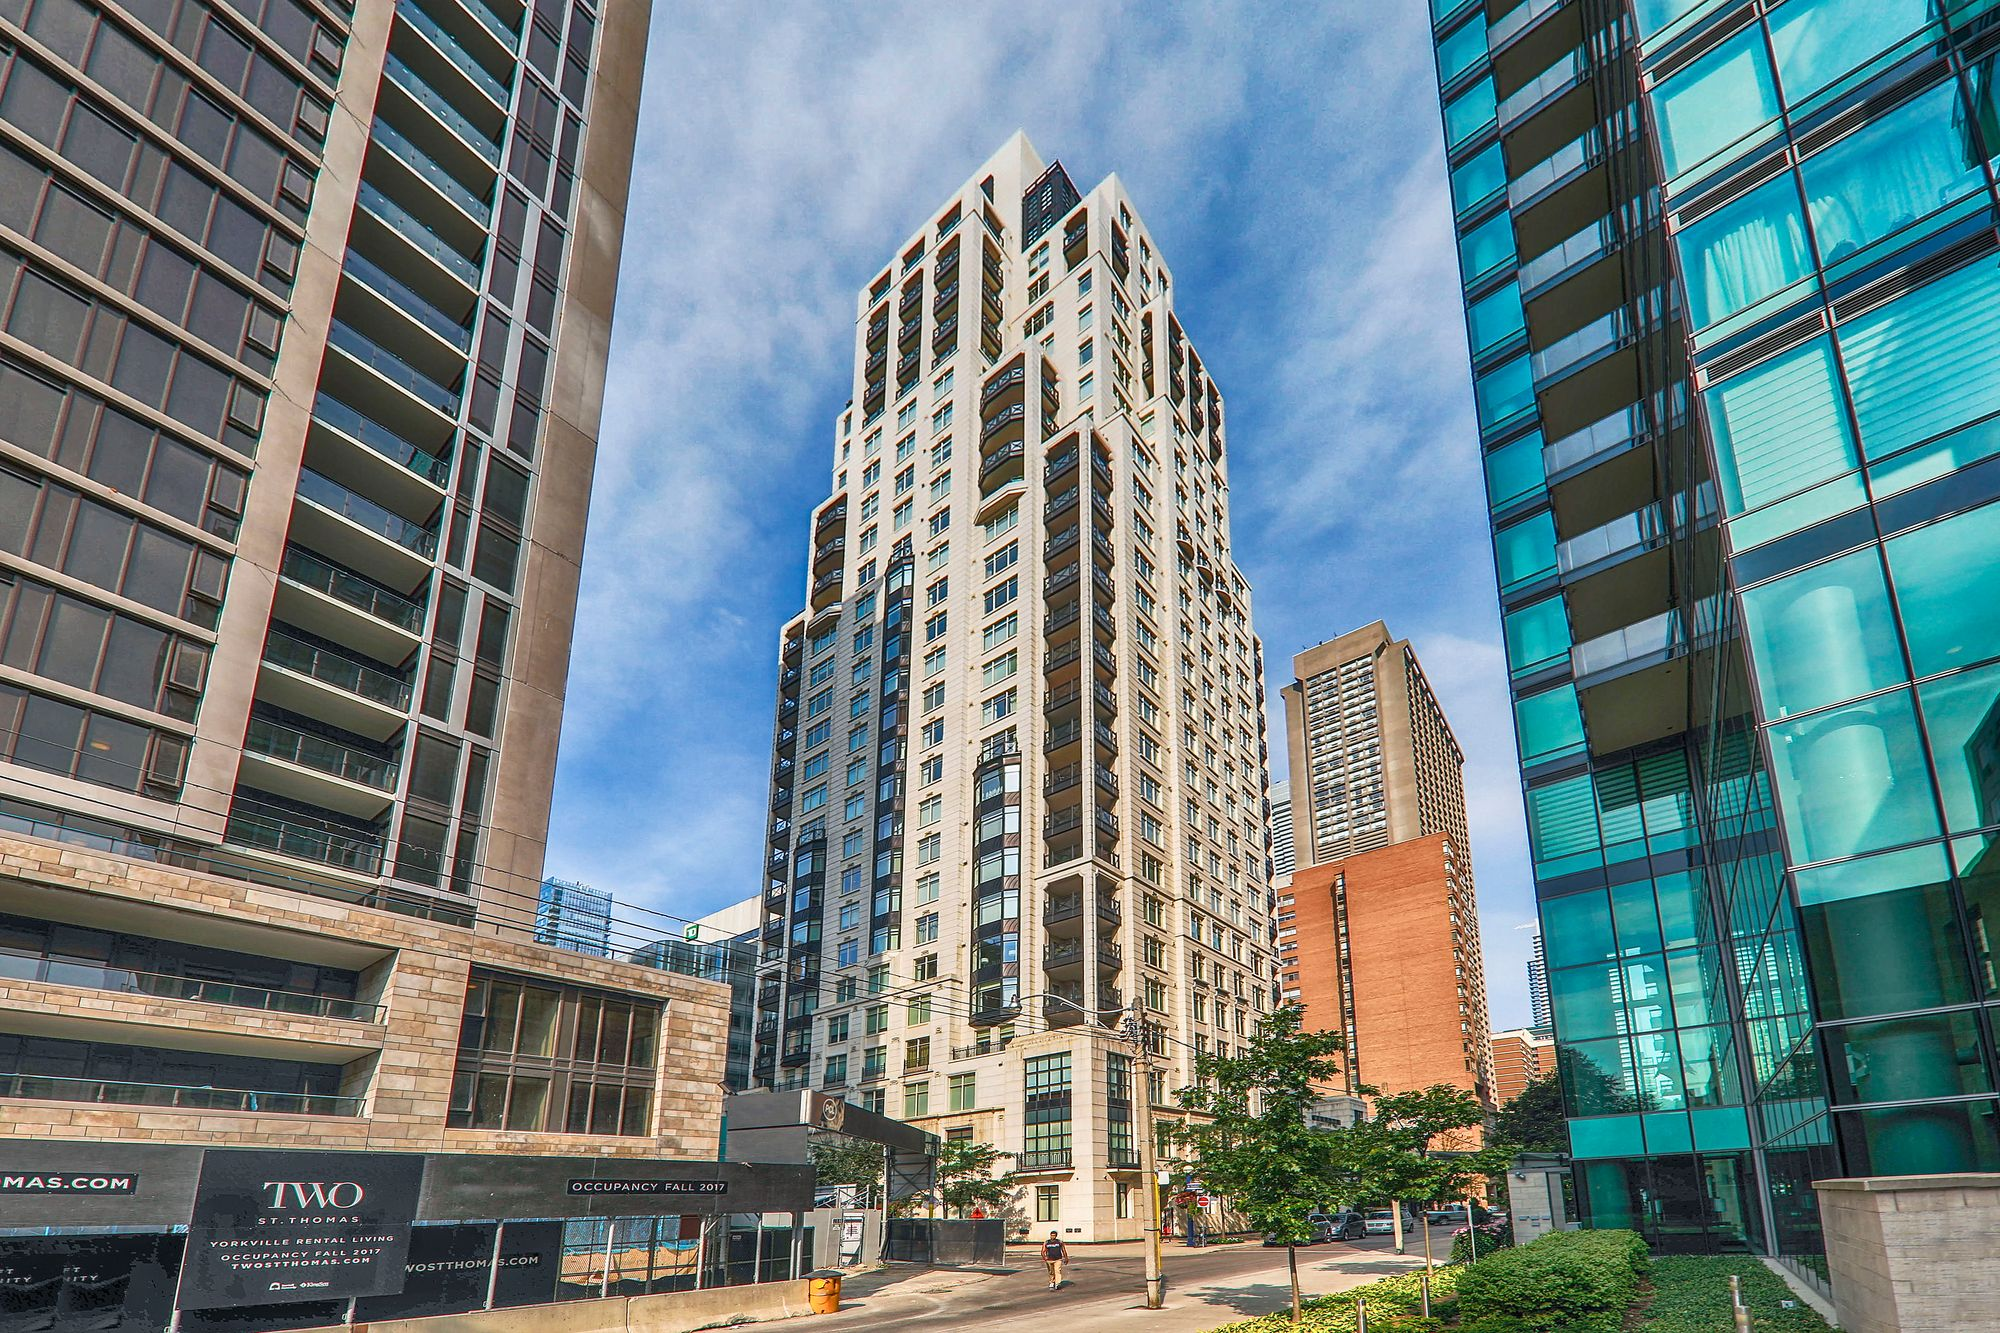 77 Charles West at 77 Charles St W. This condo is located in  Downtown, Toronto - image #1 of 4 by Strata.ca